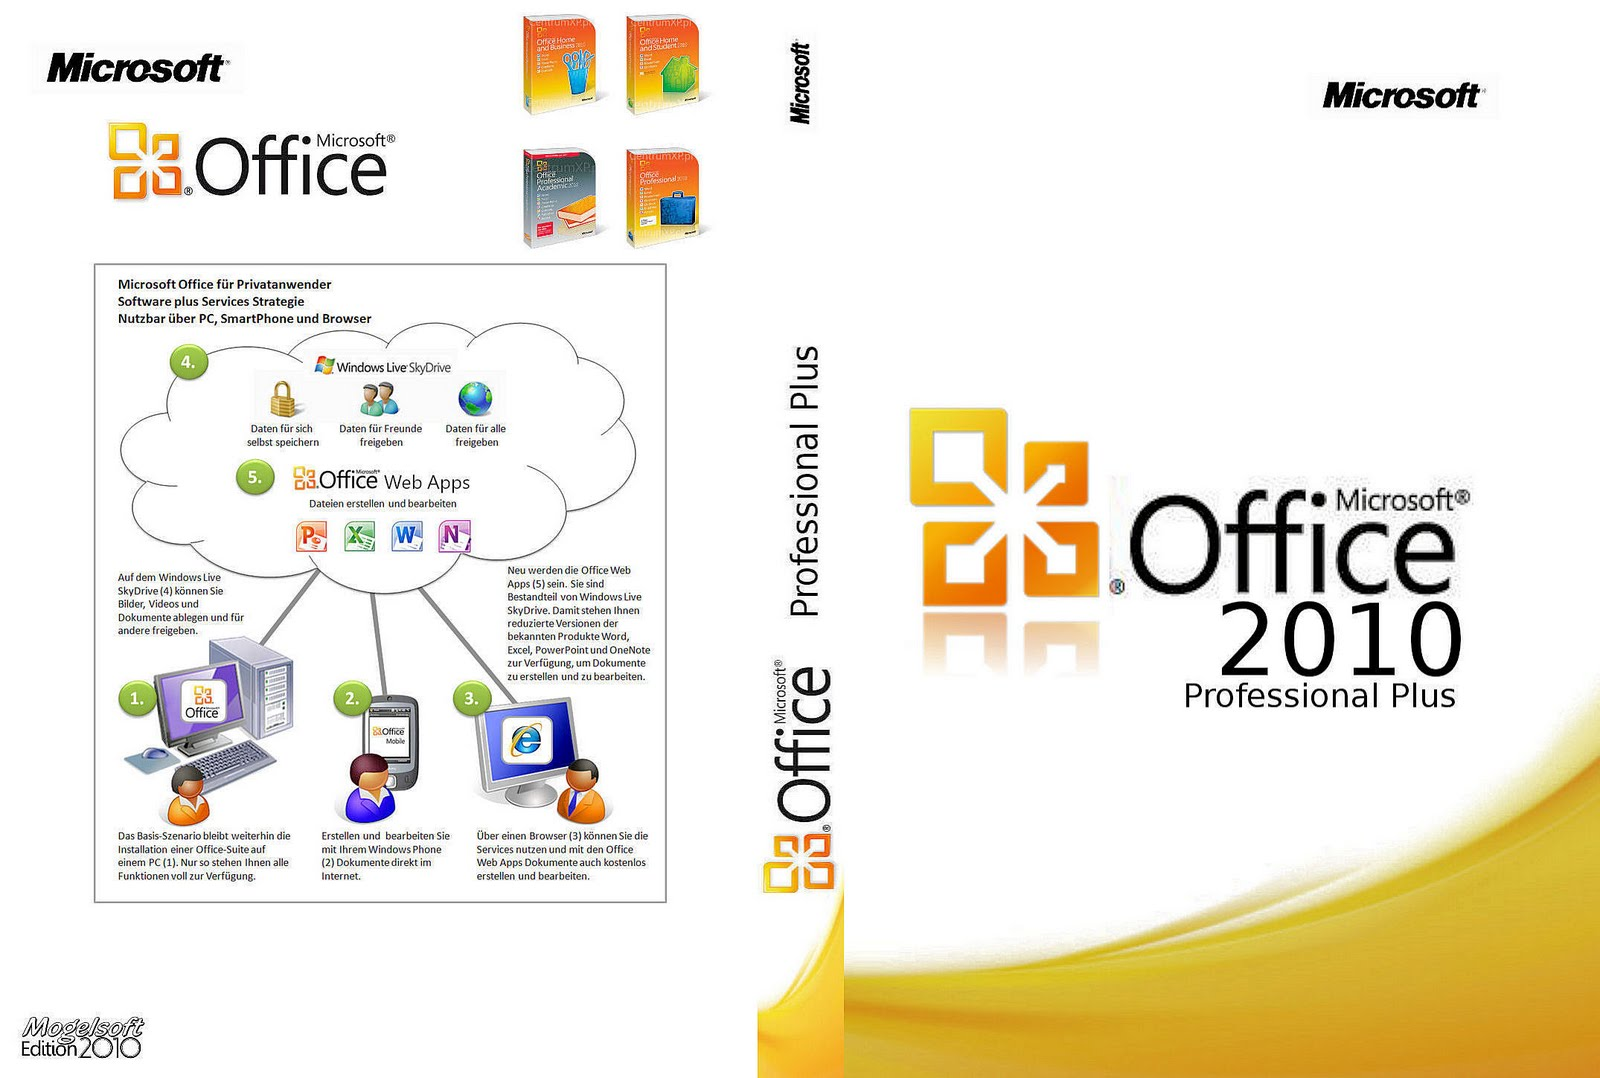 Microsoft office professional plus 2010 gigante das capas - Office professional plus 2010 ...